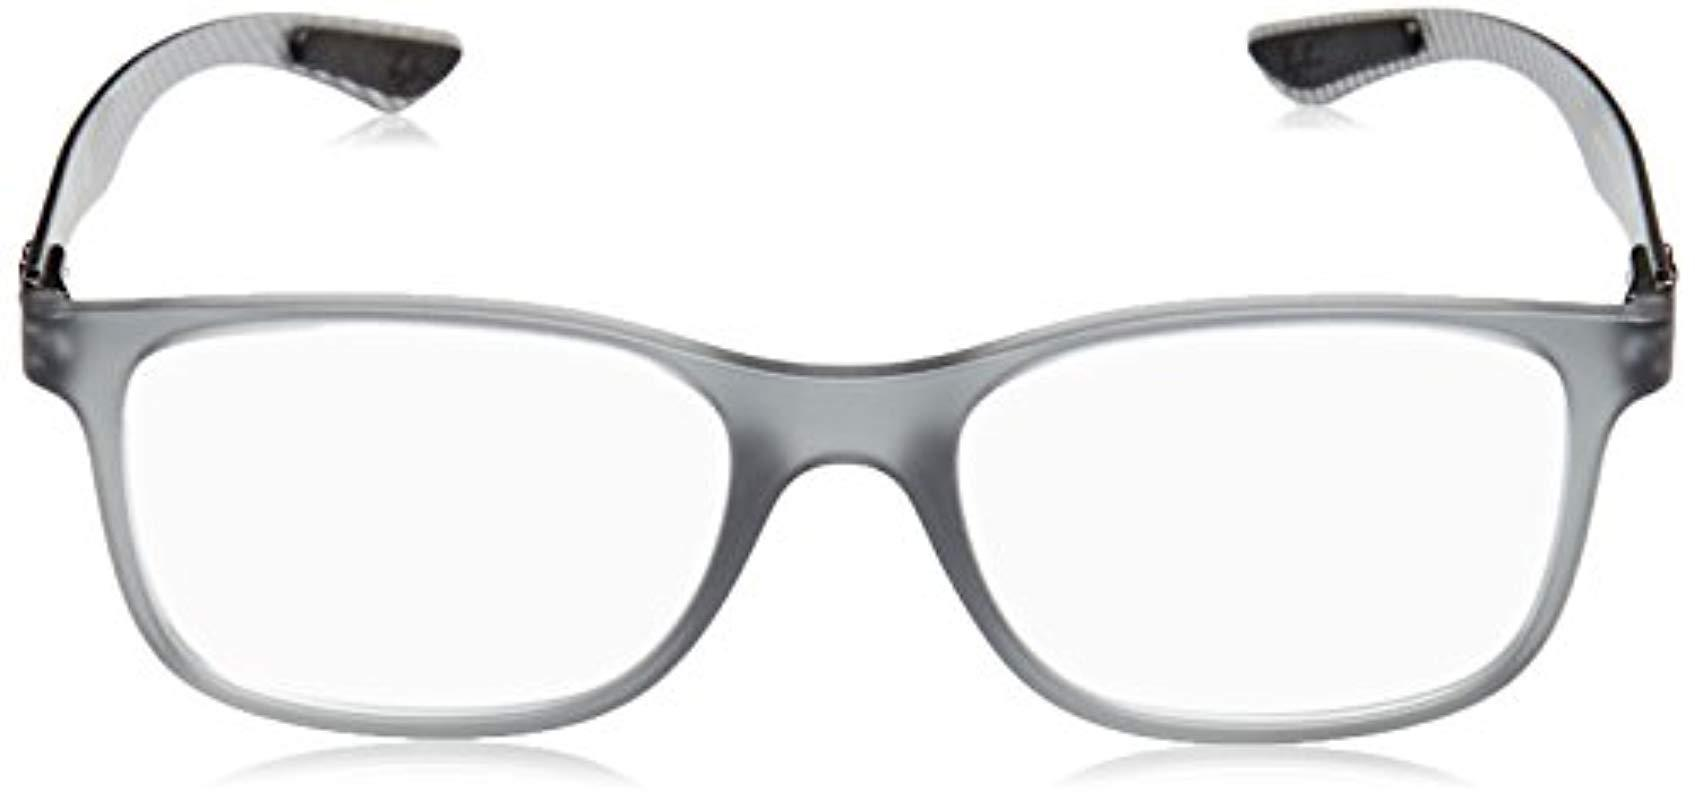 912d970998 Ray-Ban - Gray 0rx 8903 5244 55 Optical Frames